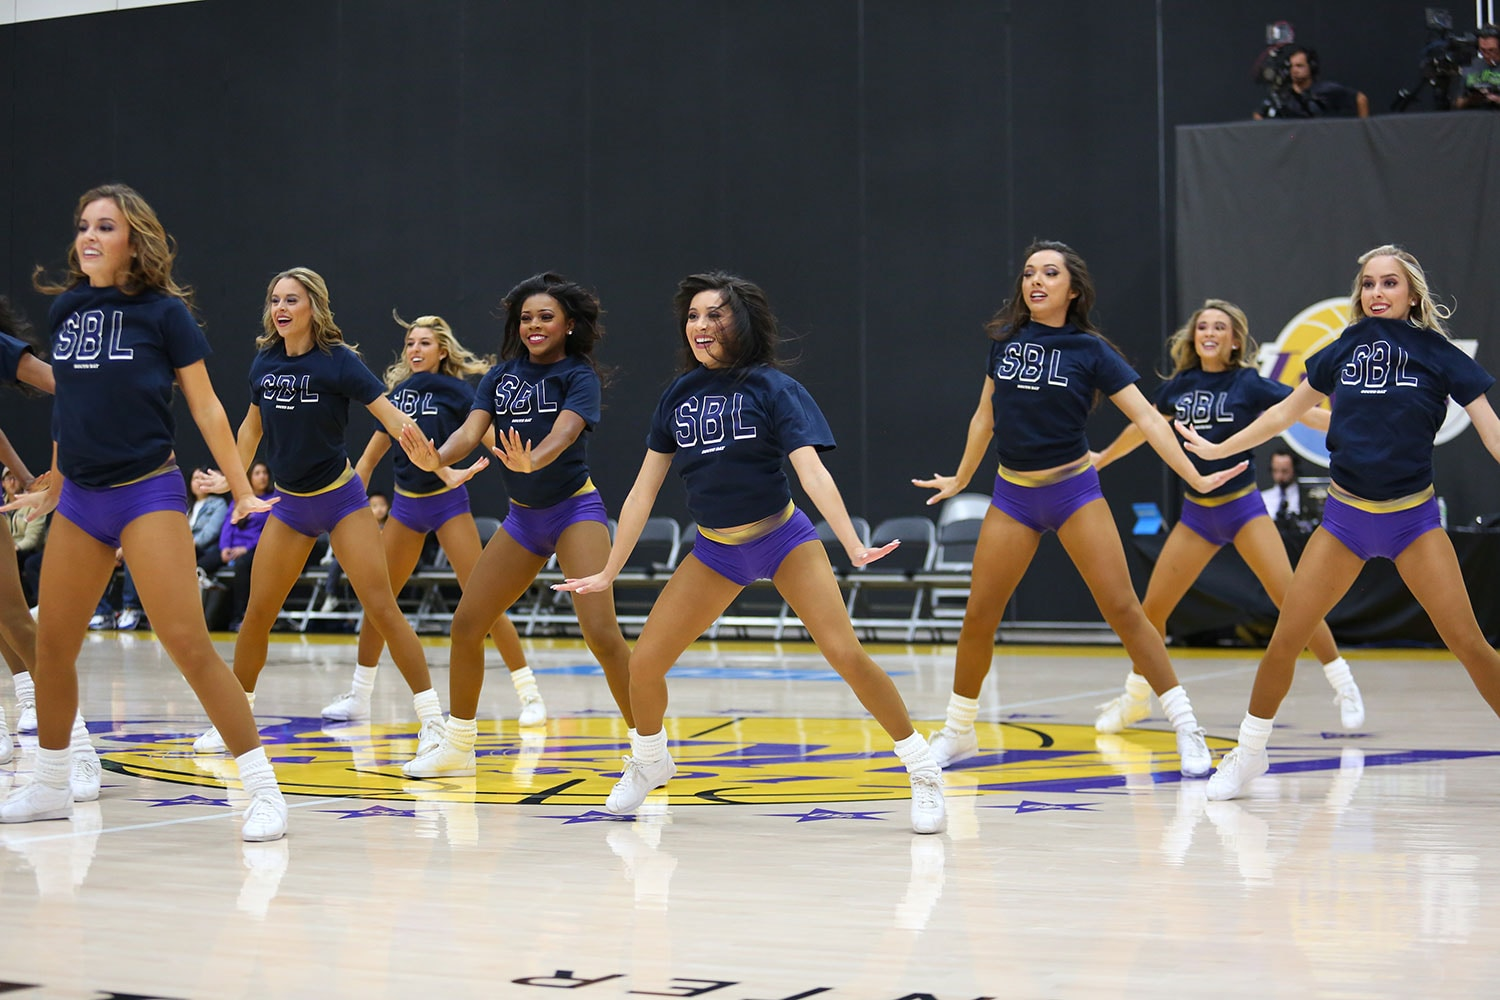 Laker Girls at South Bay Lakers Military Appreciation Night